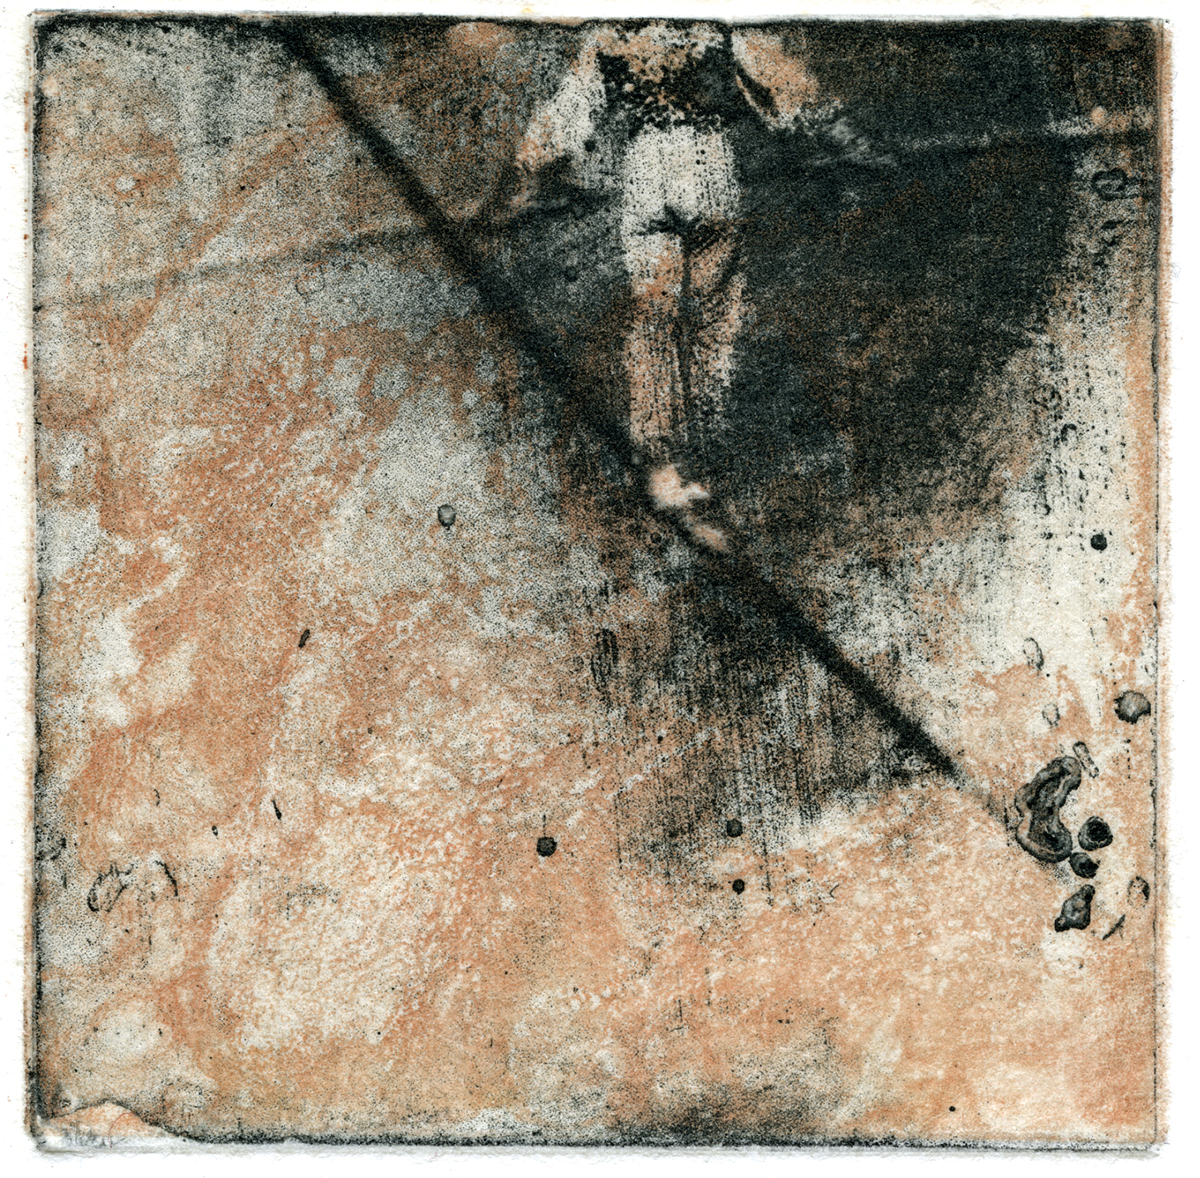 Miniprints - Glance: photo etch, intaglio, chine collé, 4